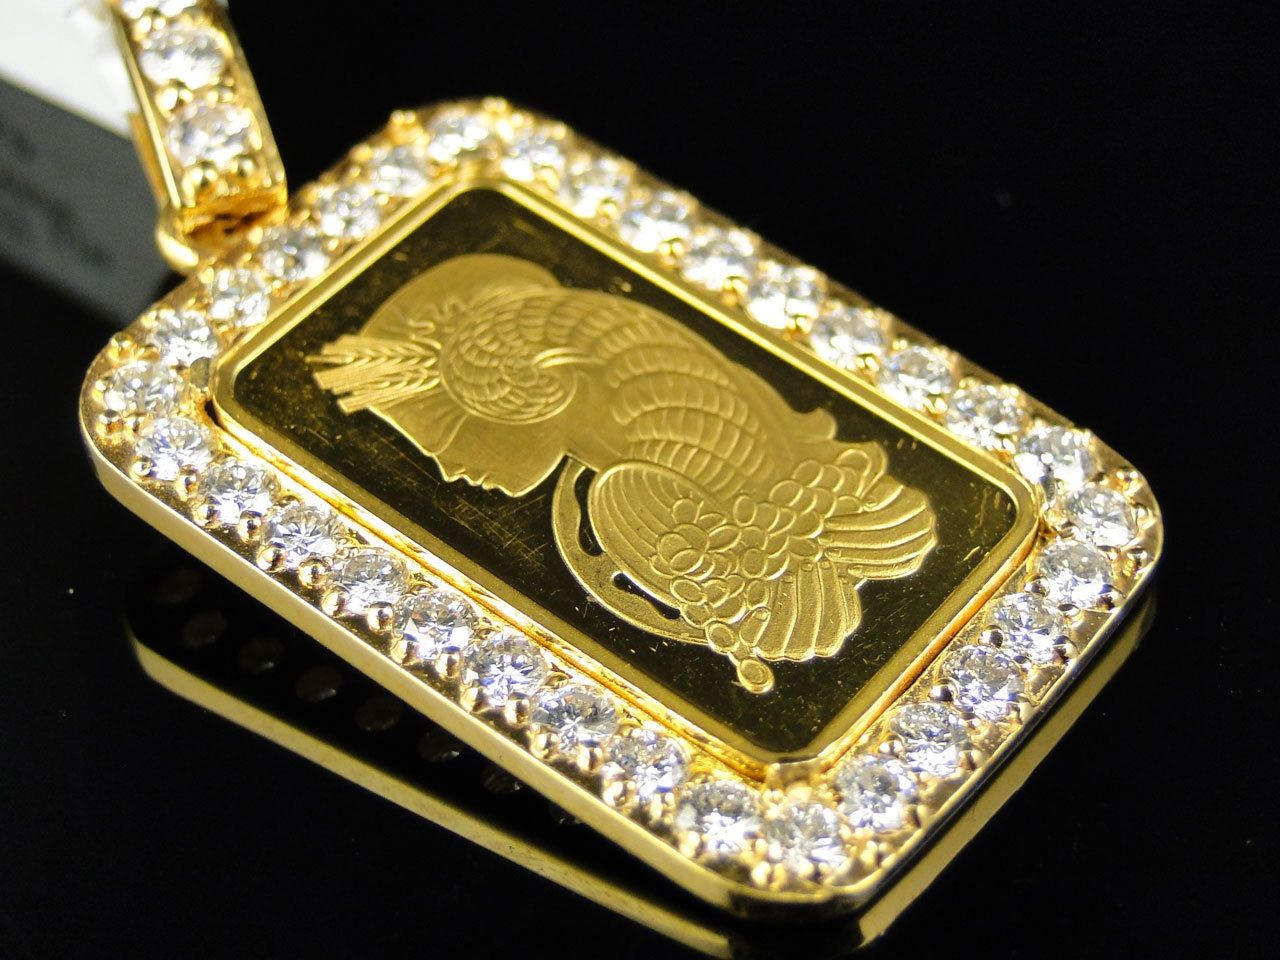 24 k solid yellow gold coin bar 5g pamp suisse swiss custom 24 k solid yellow gold coin bar 5g pamp suisse swiss custom pendant charm 15 ct mozeypictures Image collections